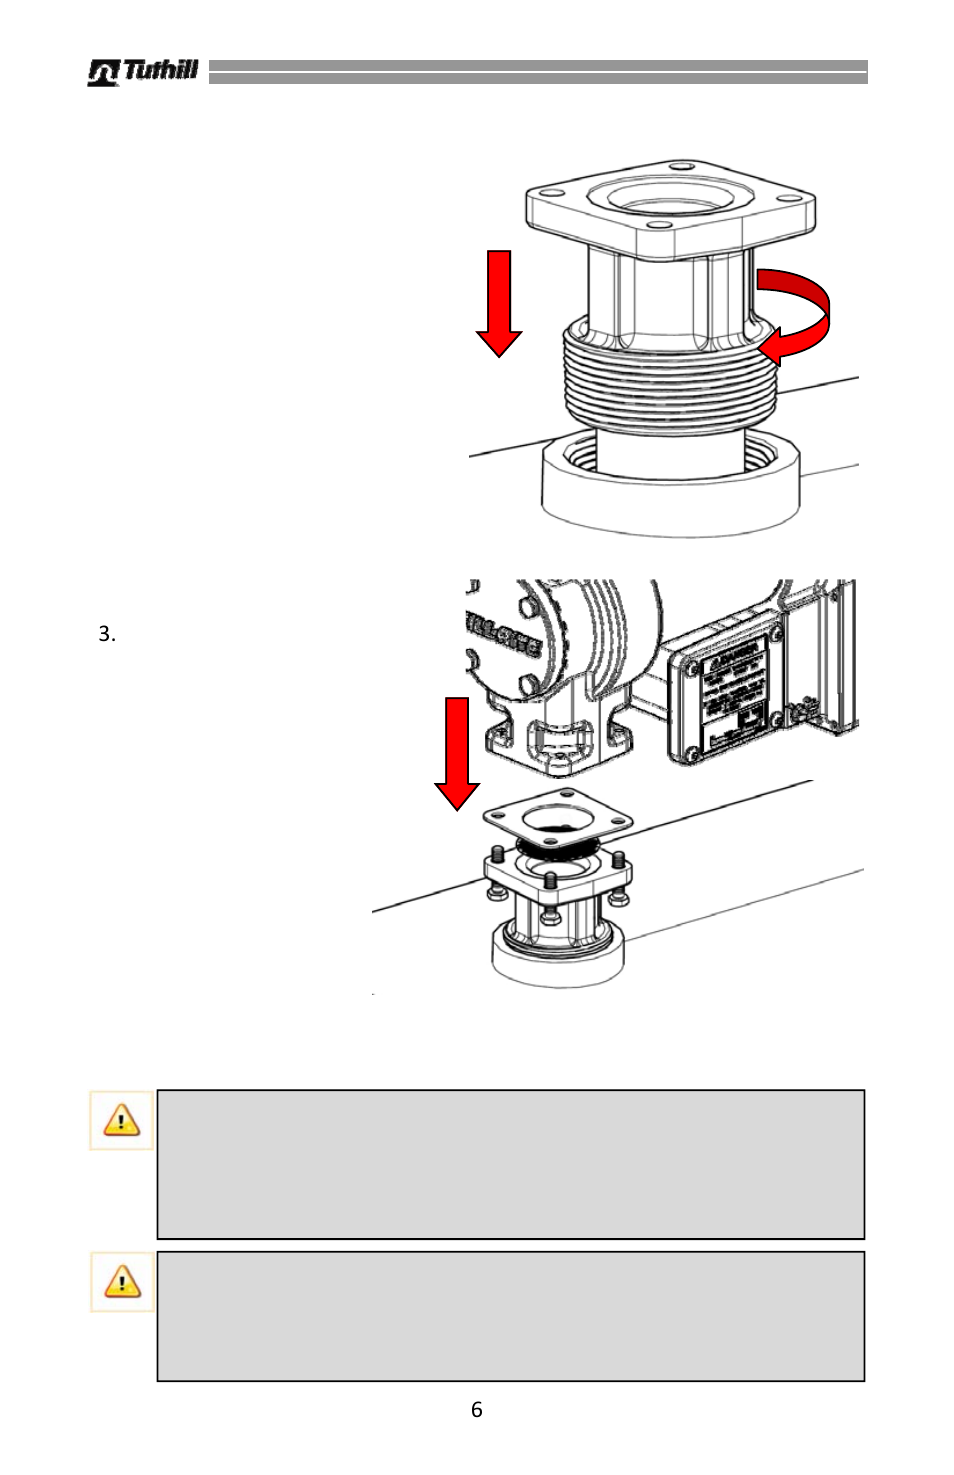 Electrical Wiring Fill Rite Fr600g Series Ac Transfer Pumps User International Battery Diagram Manual Page 6 80